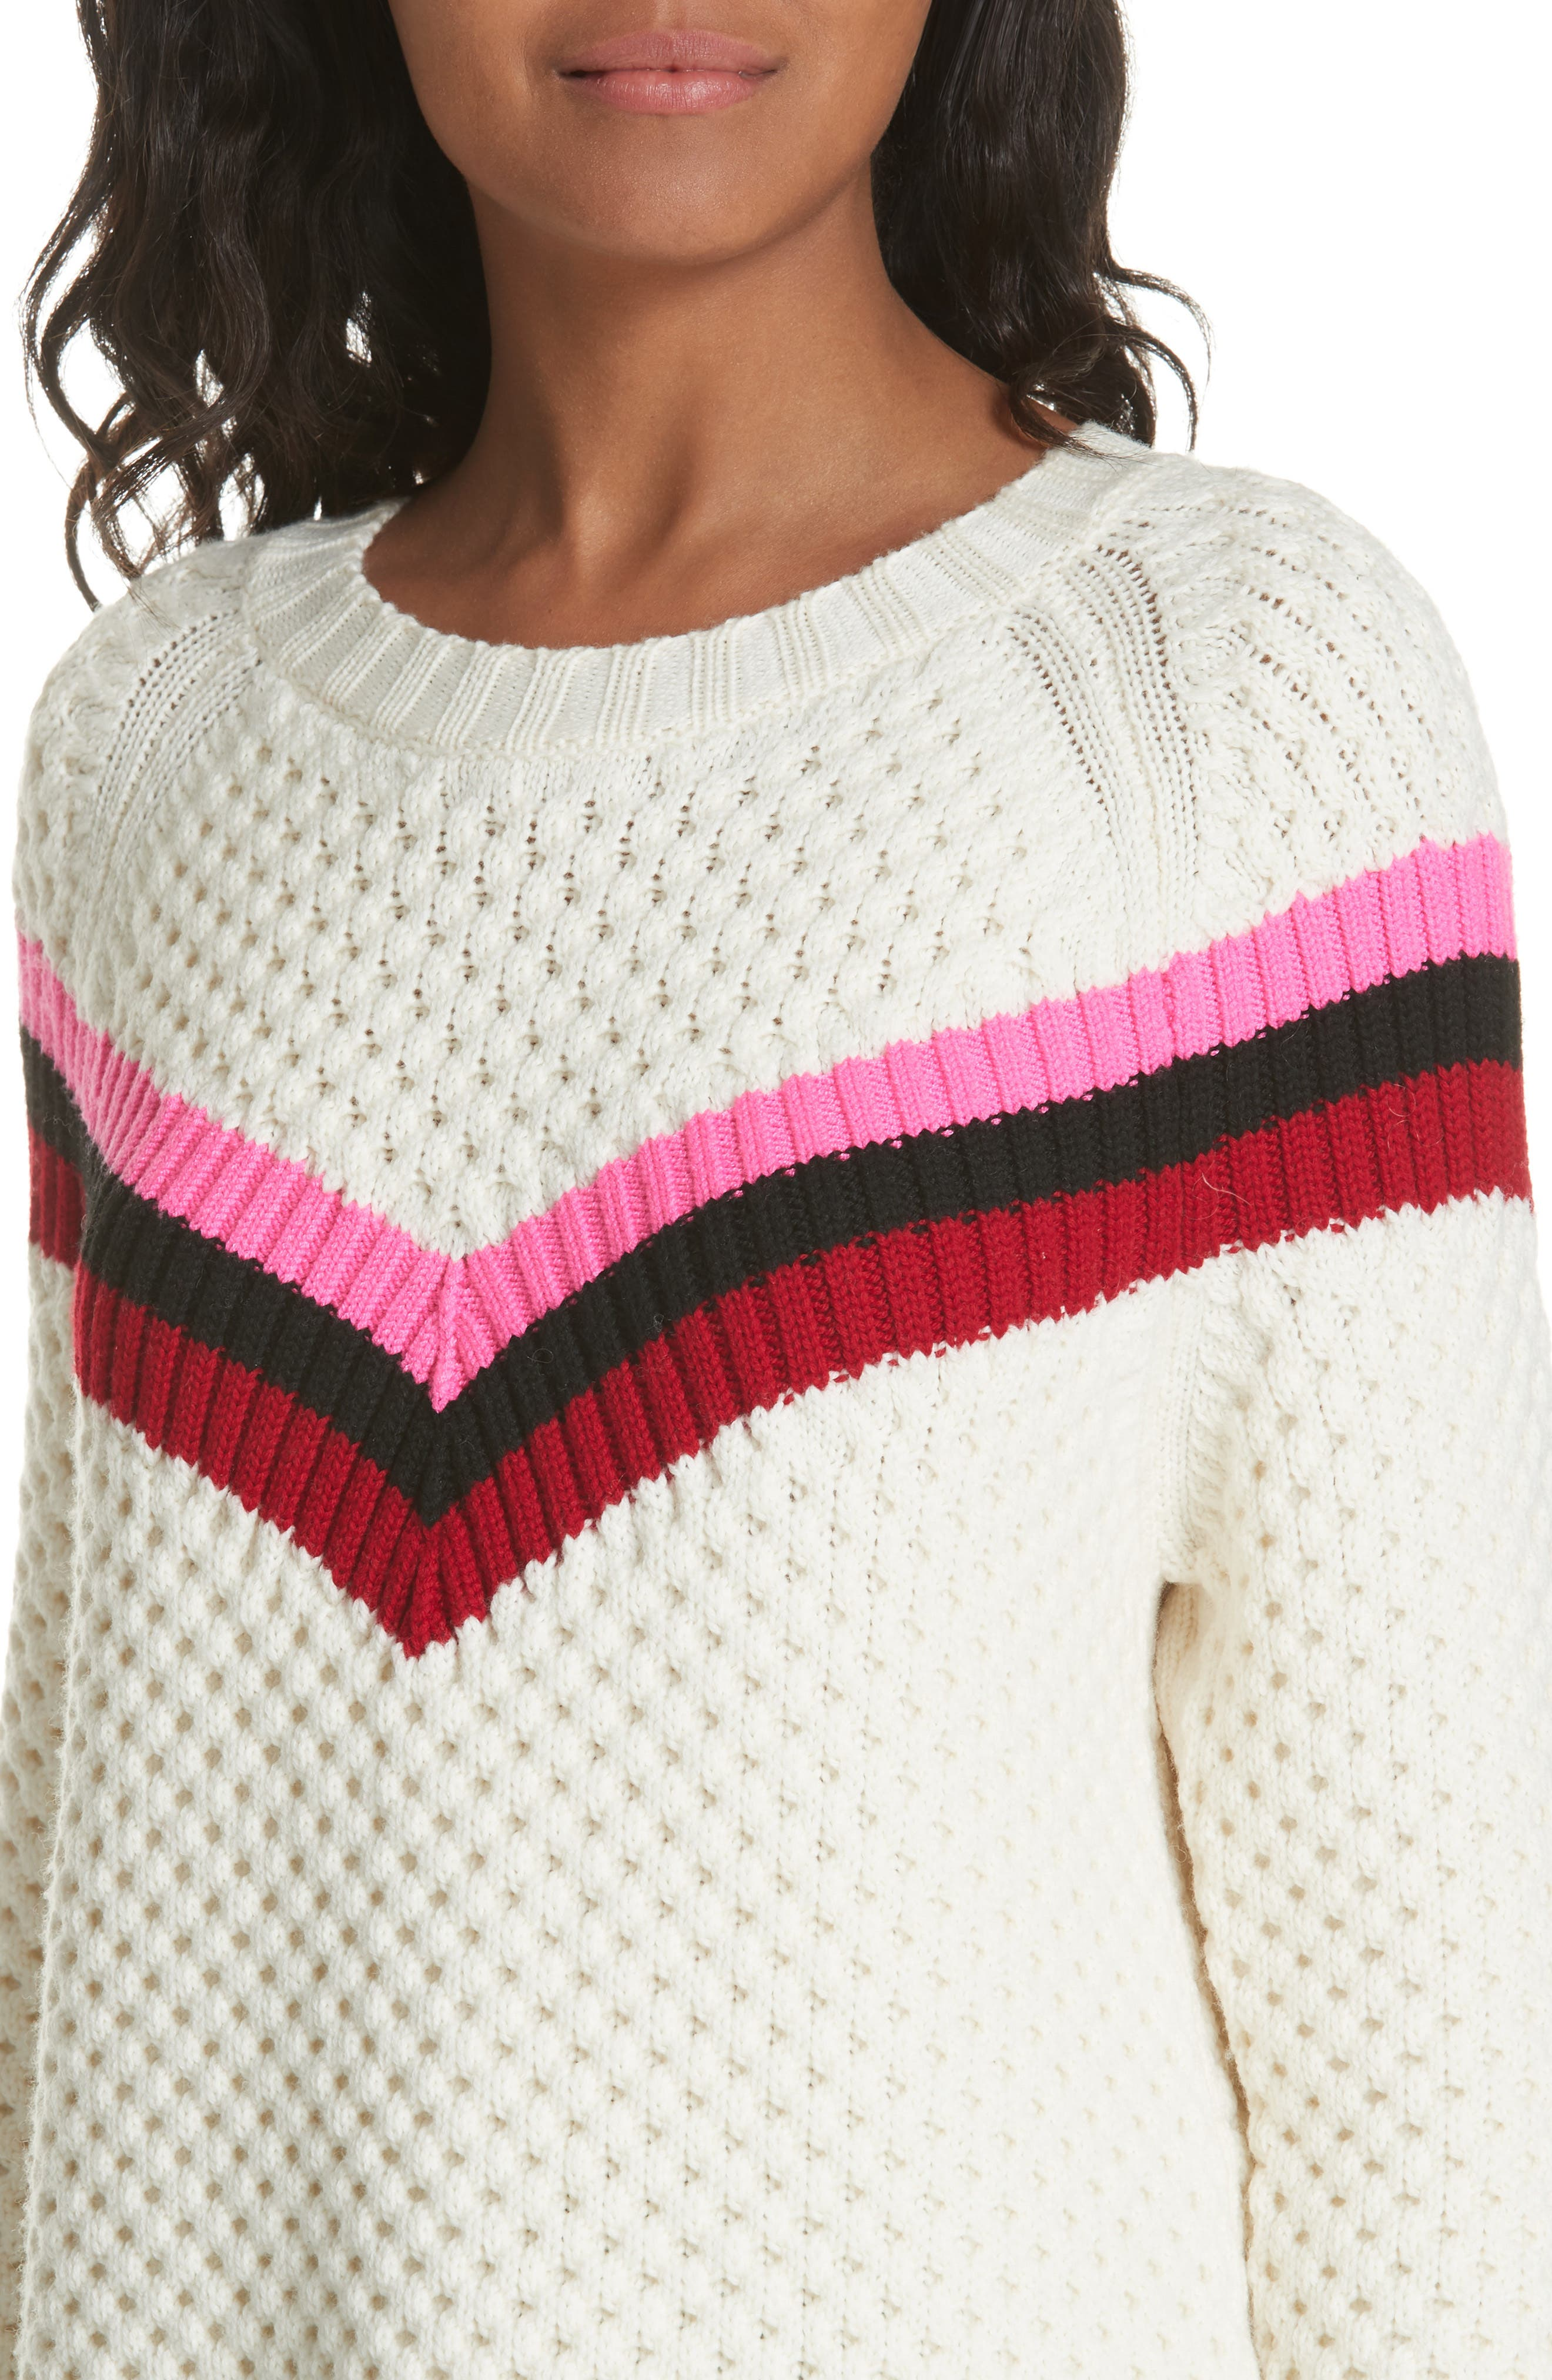 Varsity Stripe Popcorn Stitch Wool Blend Sweater,                             Alternate thumbnail 4, color,                             WHITE MULTI